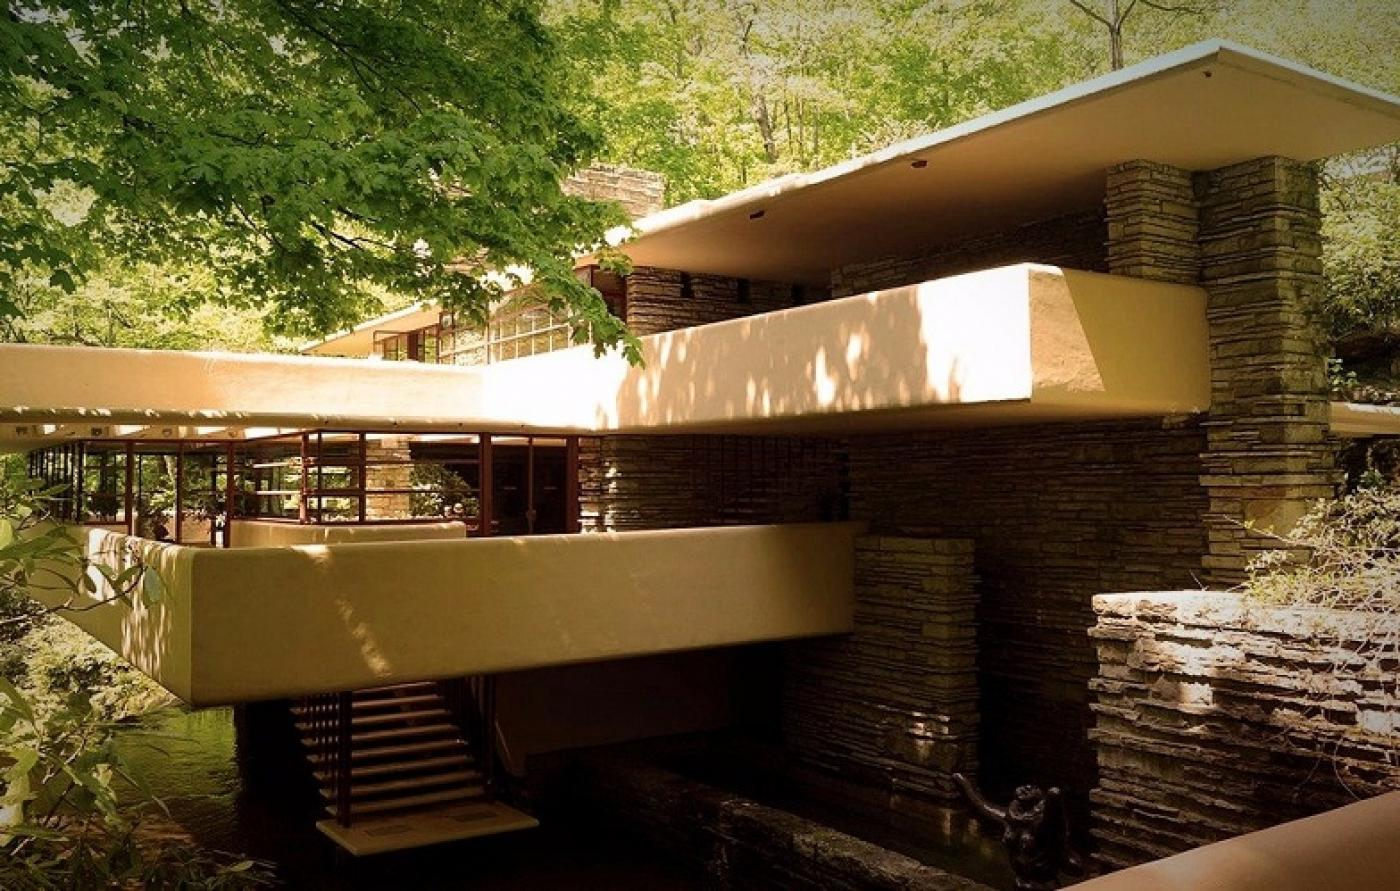 The Top 15 Frank Lloyd Wright Houses You Can Tour